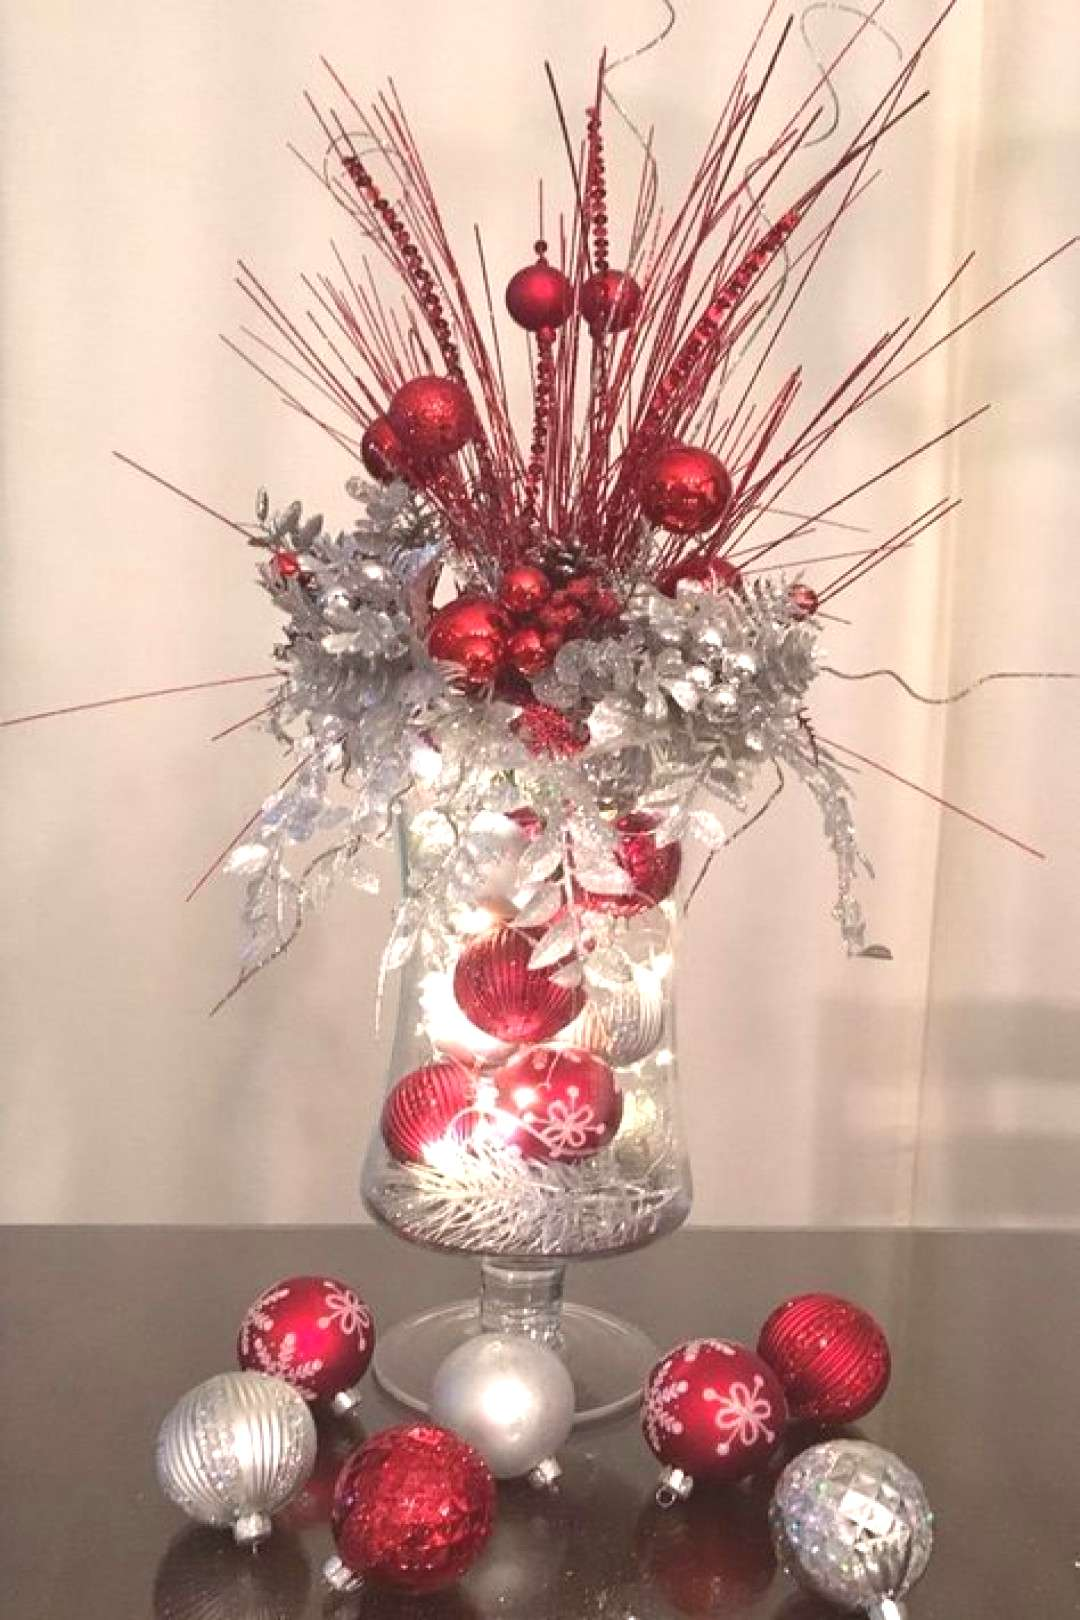 20+ Creative Christmas Centerpieces Ideas That You Must See 20+ Creative Christmas Centerpieces Ide